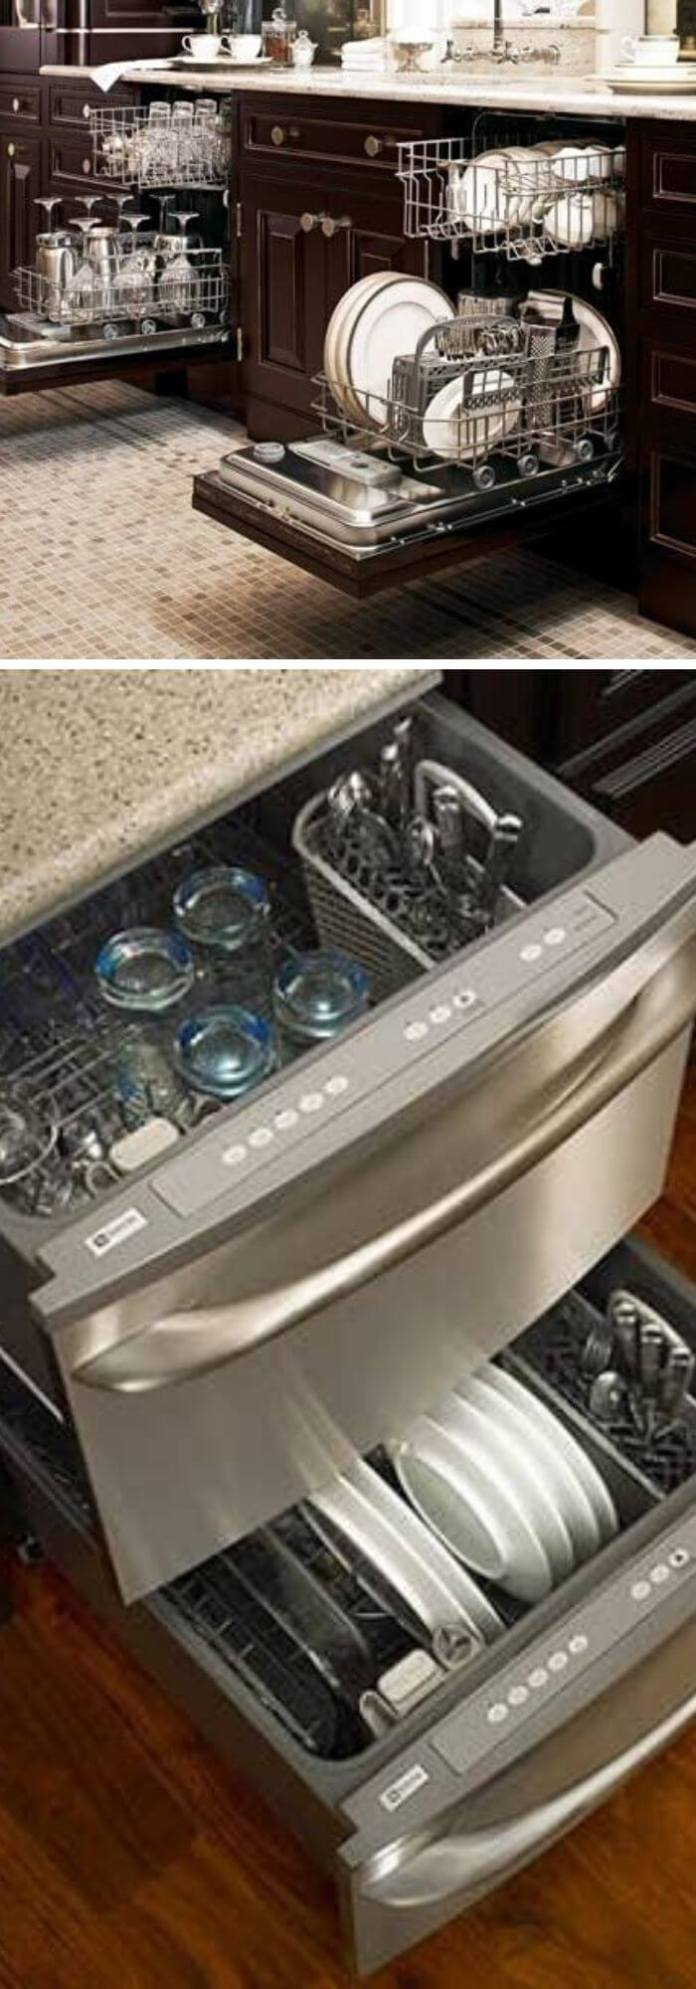 Make space for two dishwashers except for one